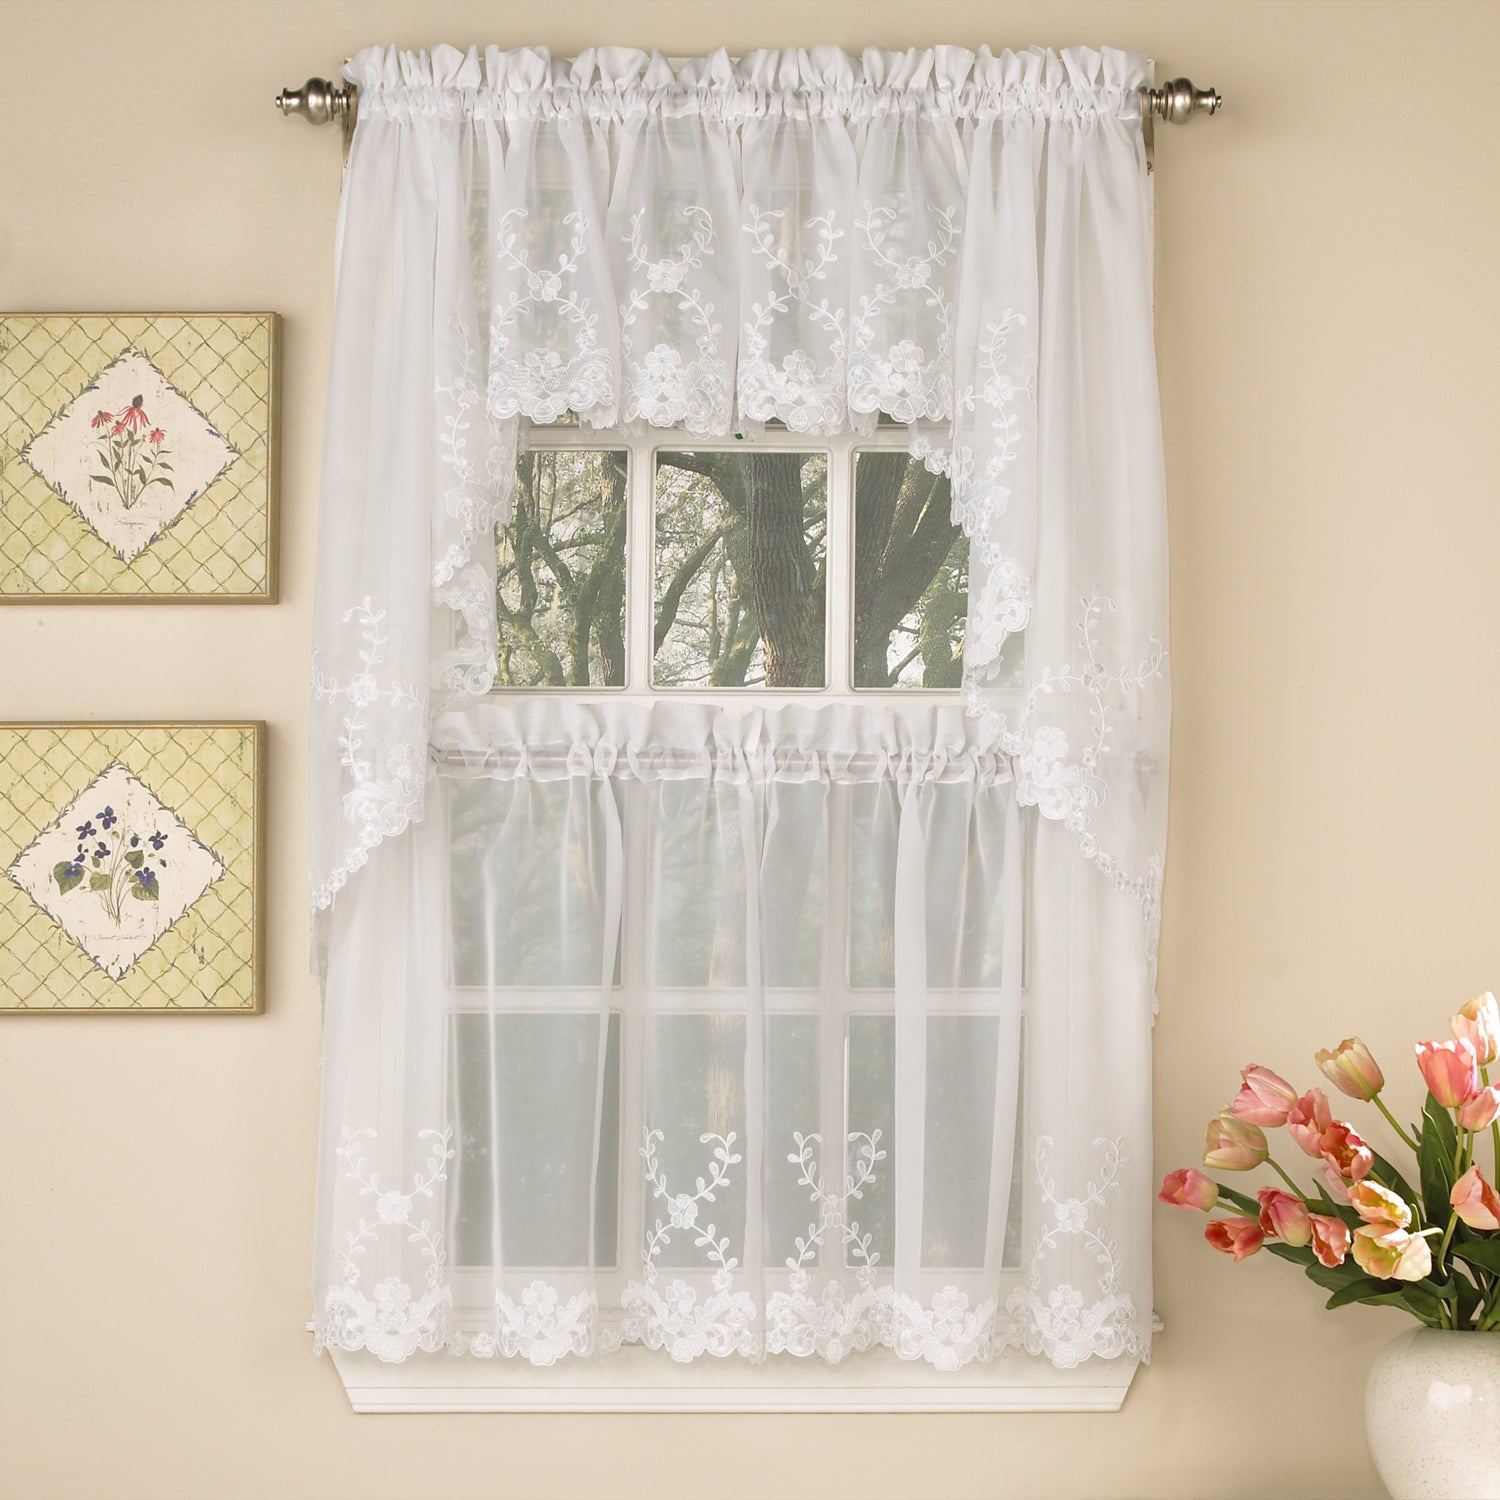 Sheer Voile Embroidered Scrolling Floral Leaf Pattern Window Curtain Pieces – Tiers, Valance And Swag Pair Options Throughout White Tone On Tone Raised Microcheck Semisheer Window Curtain Pieces (View 20 of 20)